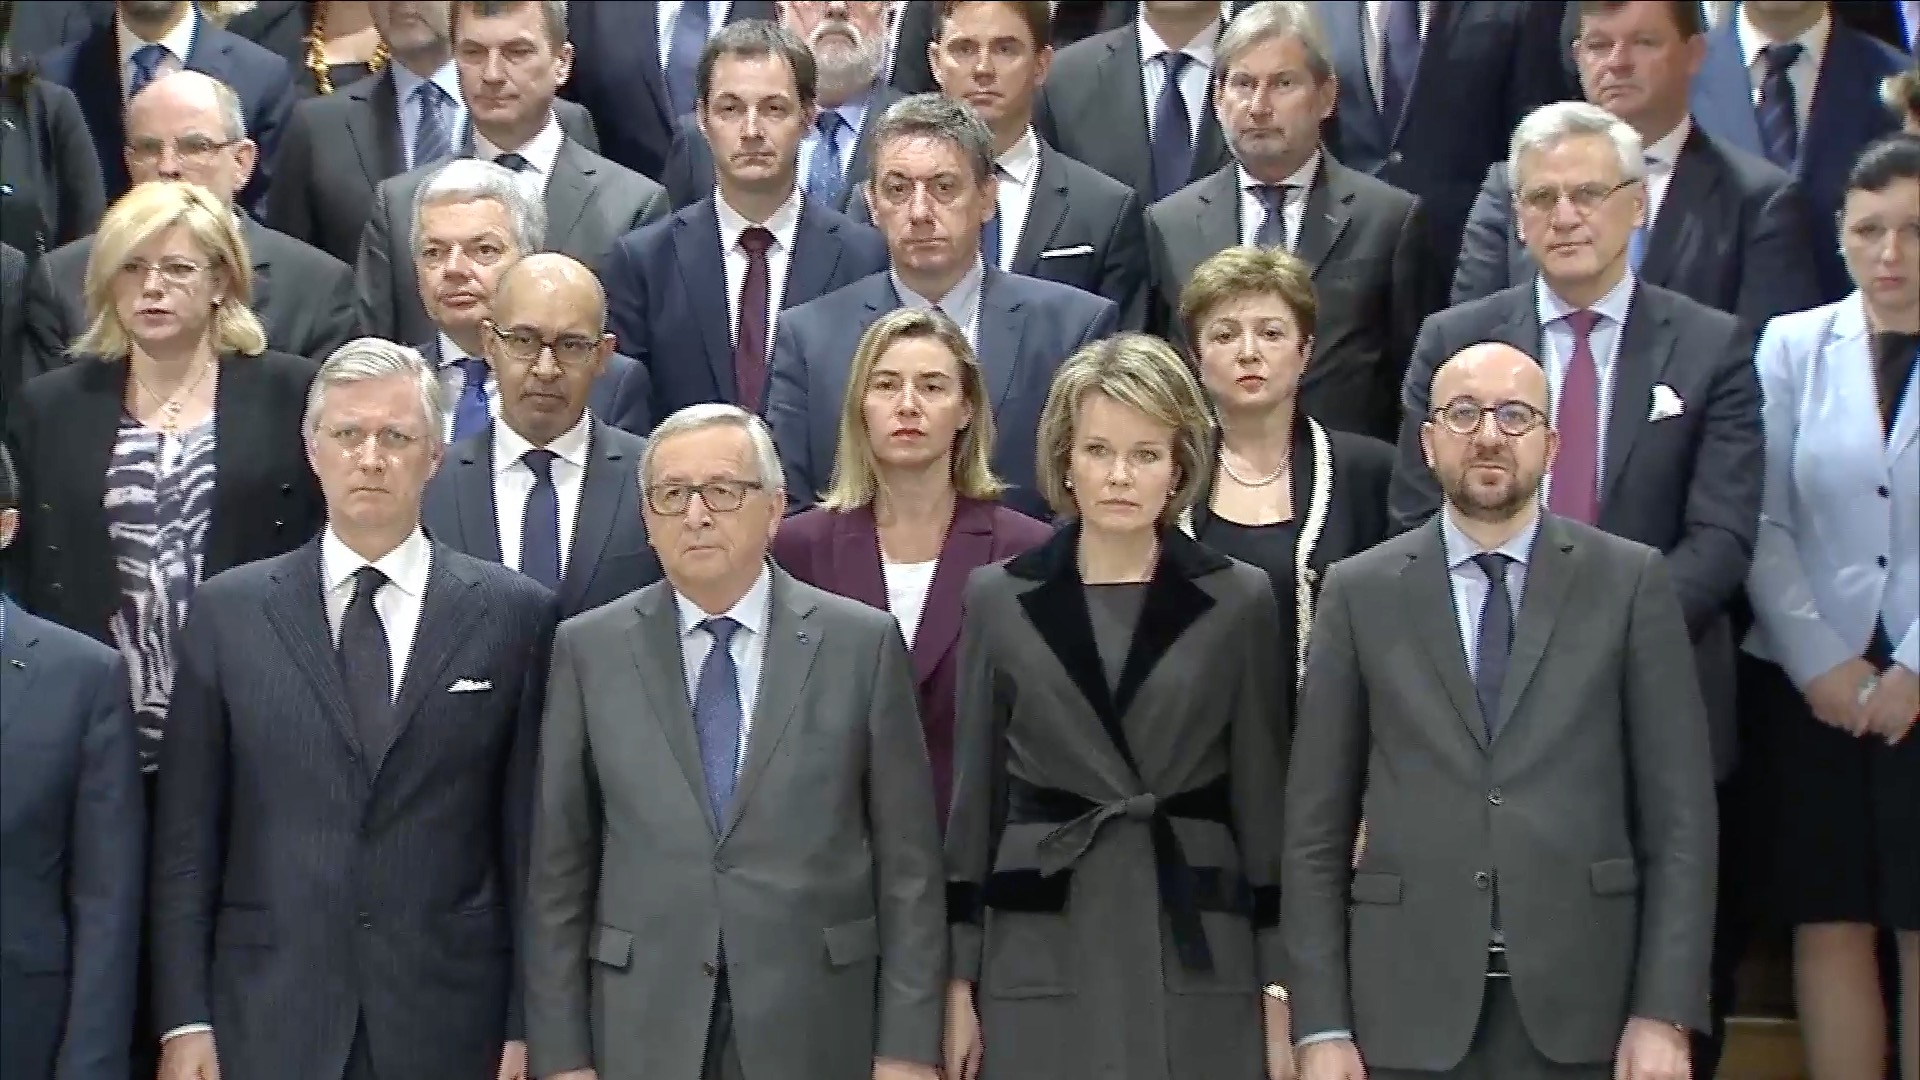 Minute of silenece for victims of Brussels attacks